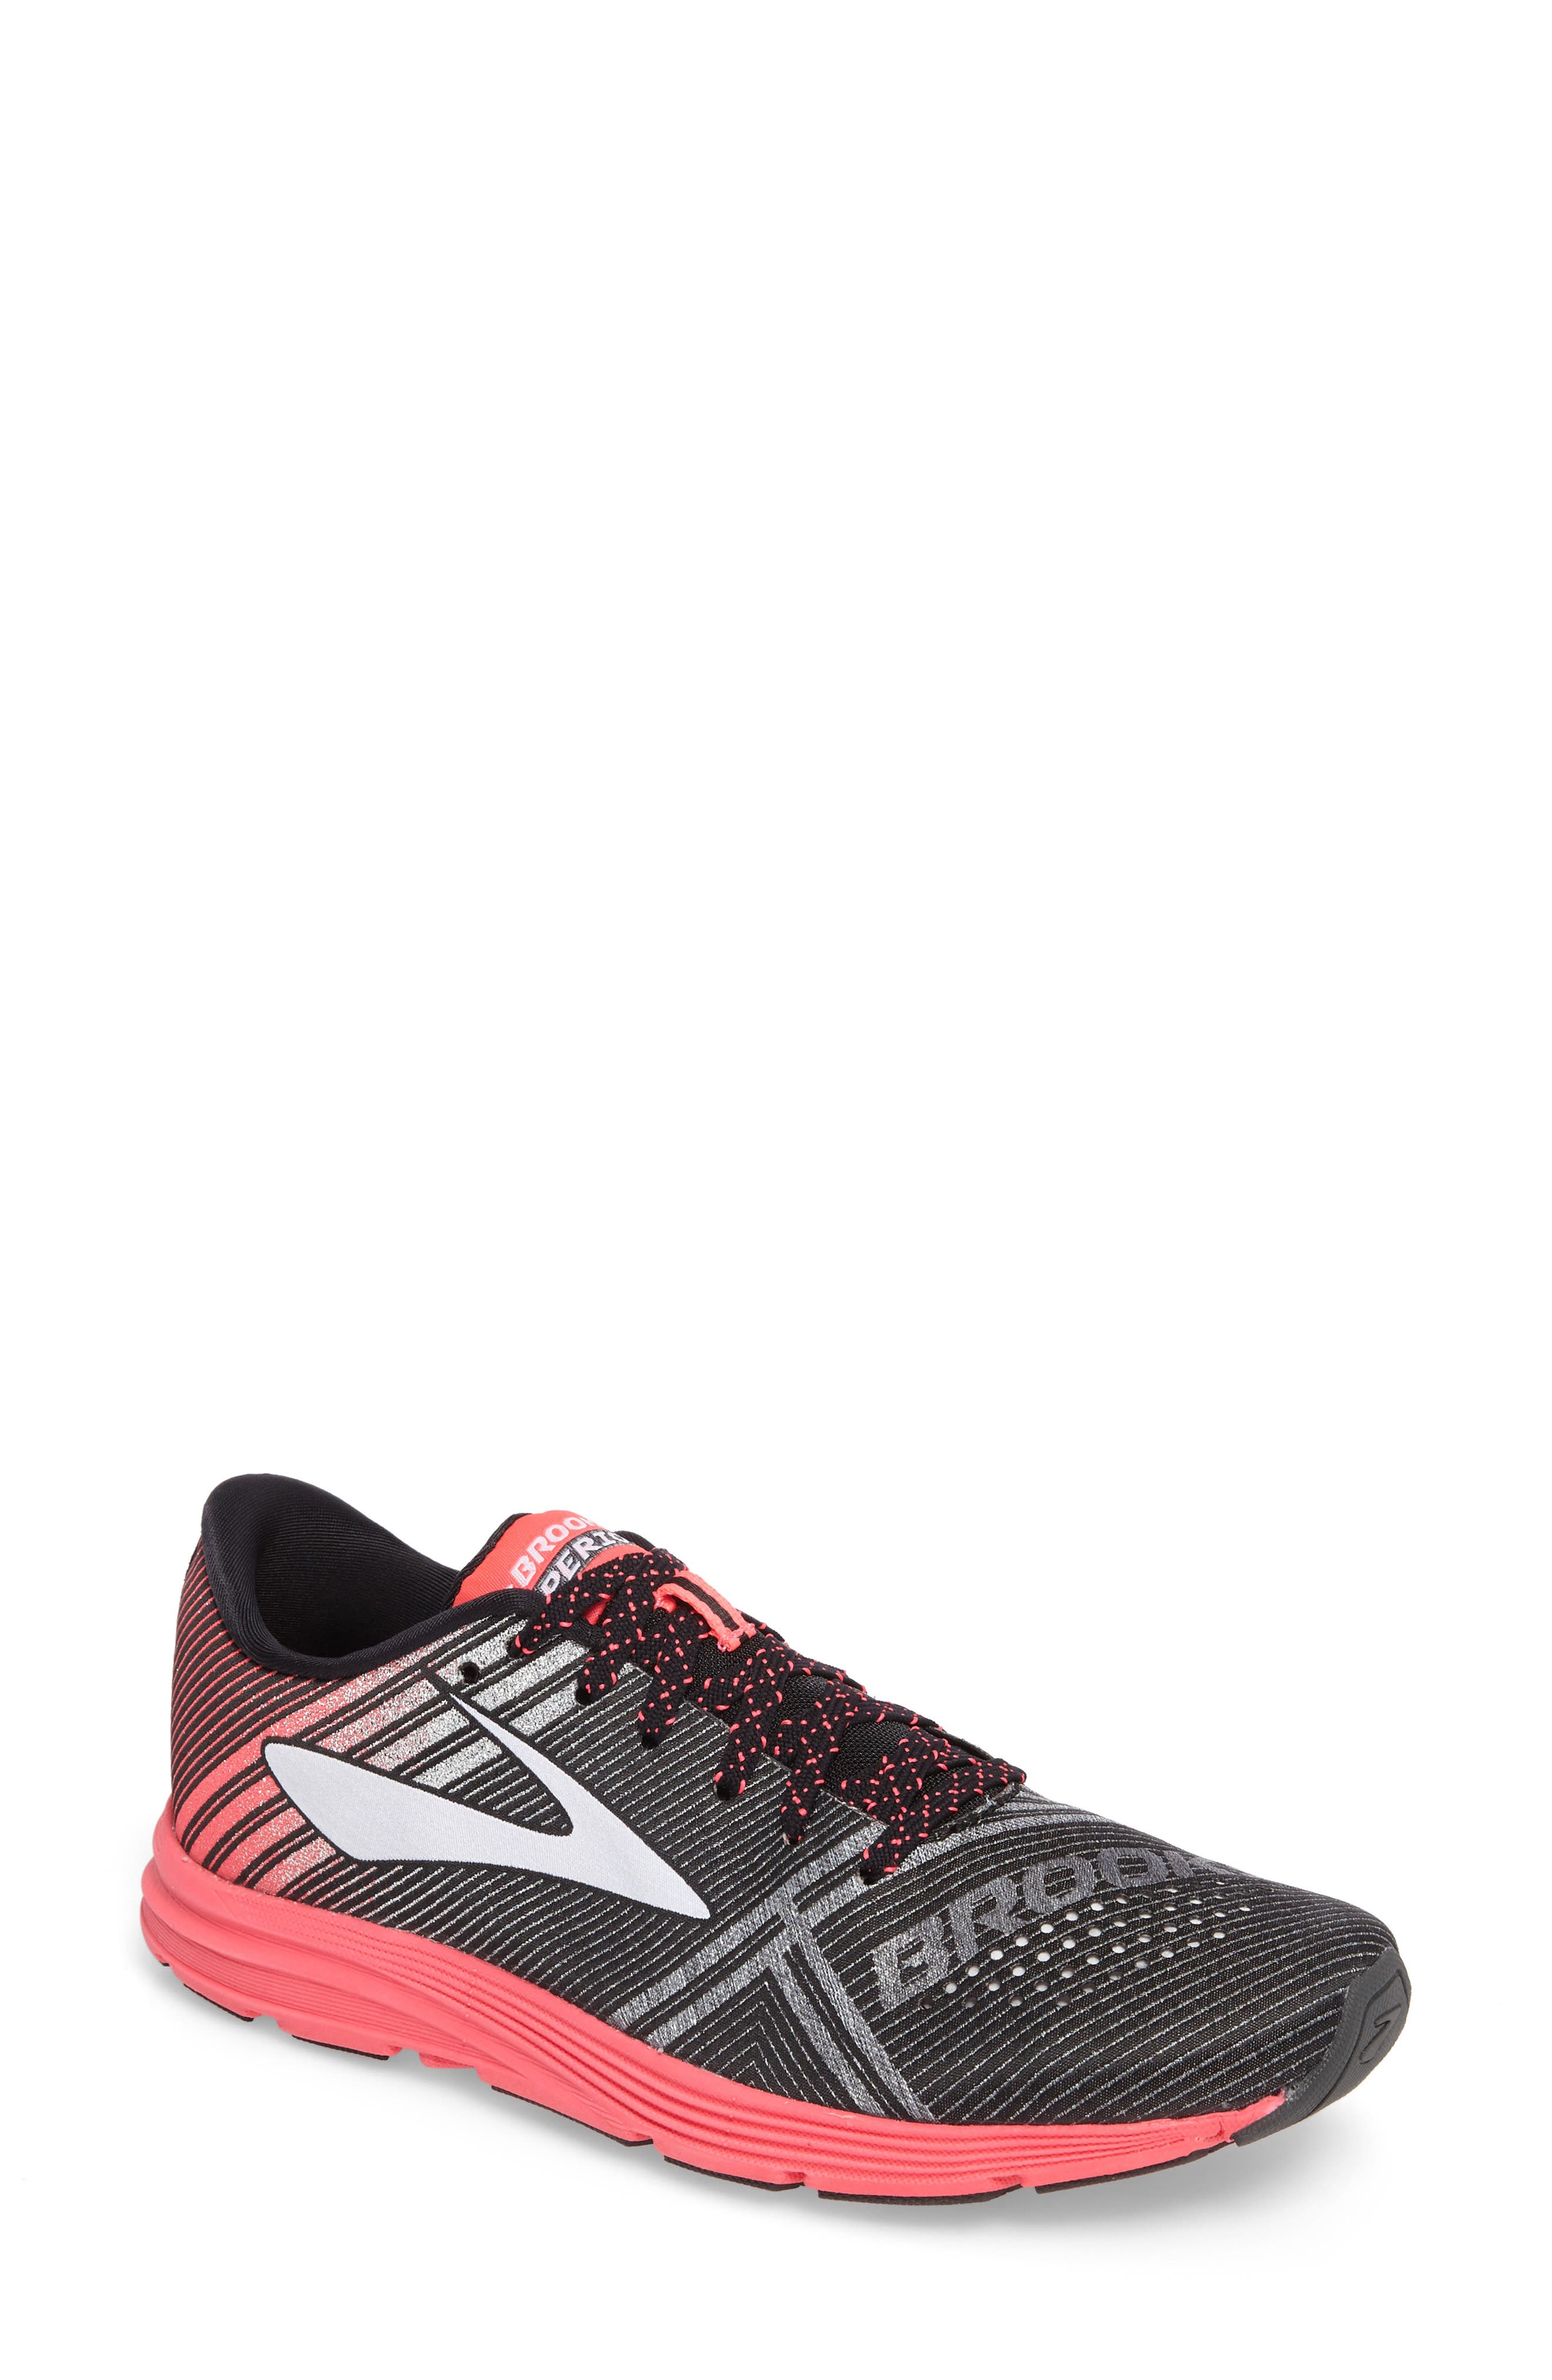 'Hyperion' Running Shoe,                             Main thumbnail 1, color,                             002